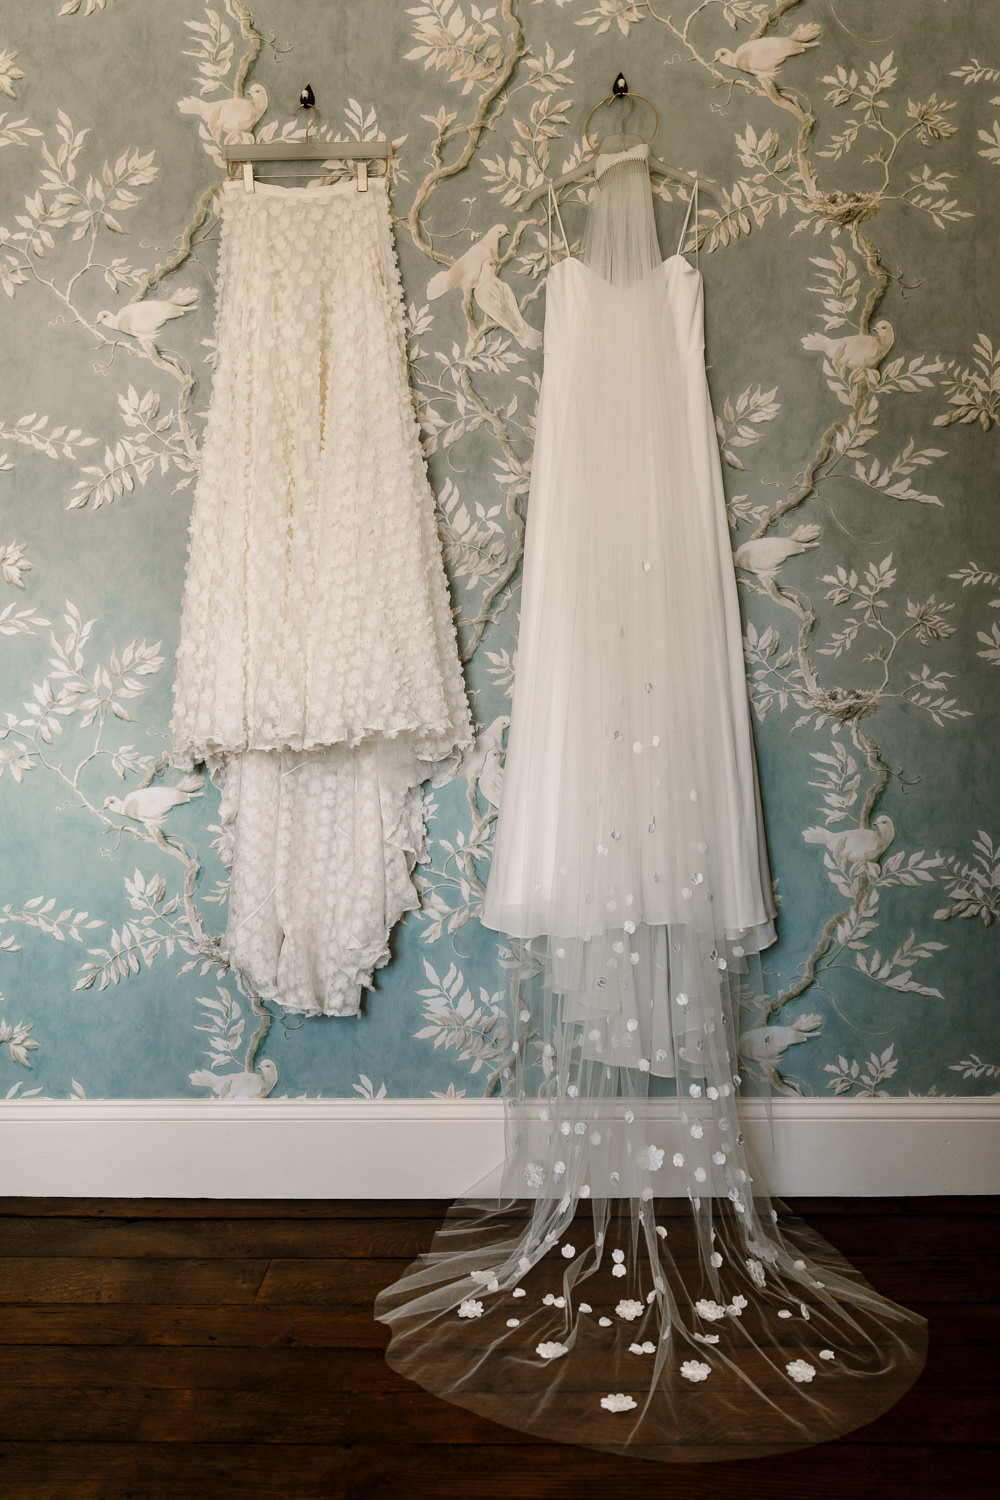 Charlie Brear Two Piece Skirt Top Dress Gown Bride Bridal Veil Sperry Tent Wedding Hayley Baxter Photography